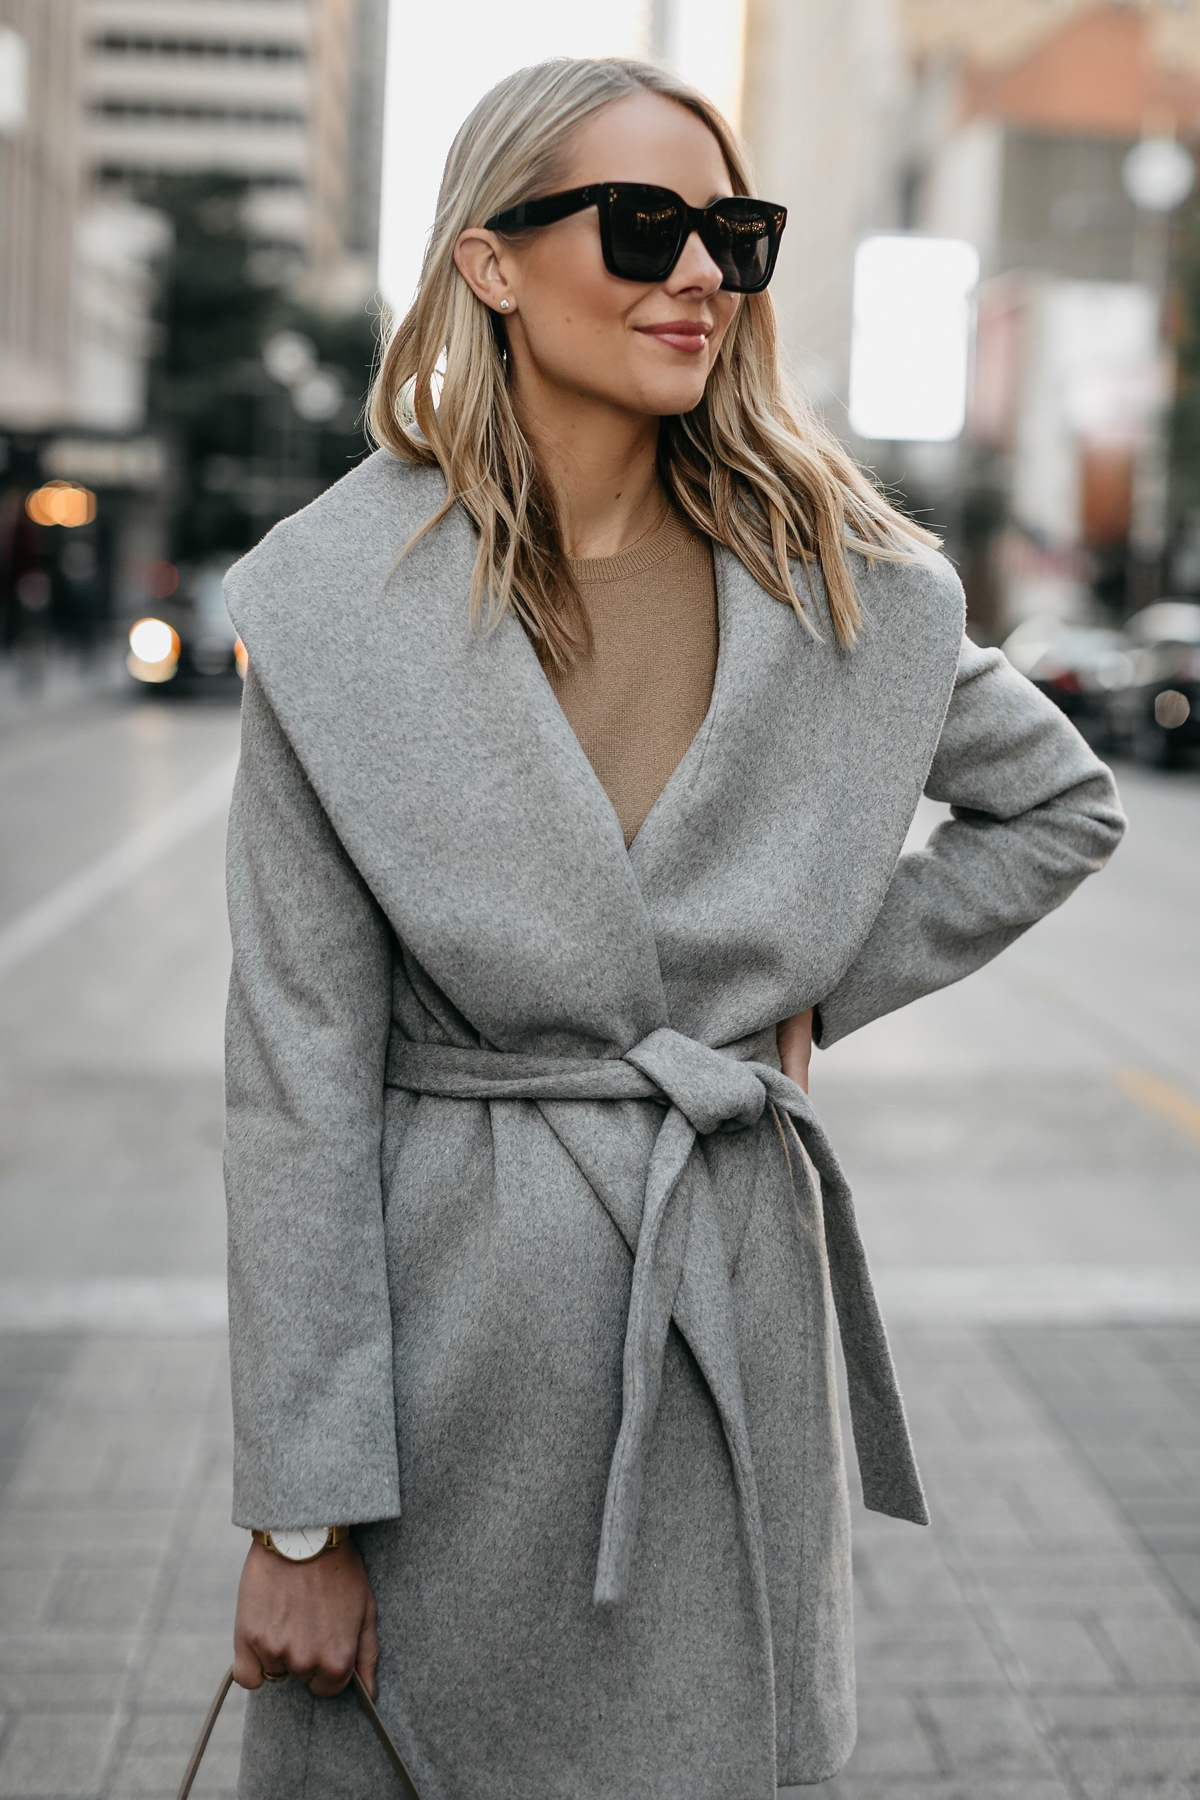 Blonde Woman Wearing Grey Wrap Coat Outfit Fashion Jackson Dallas Blogger Fashion Blogger Street Style